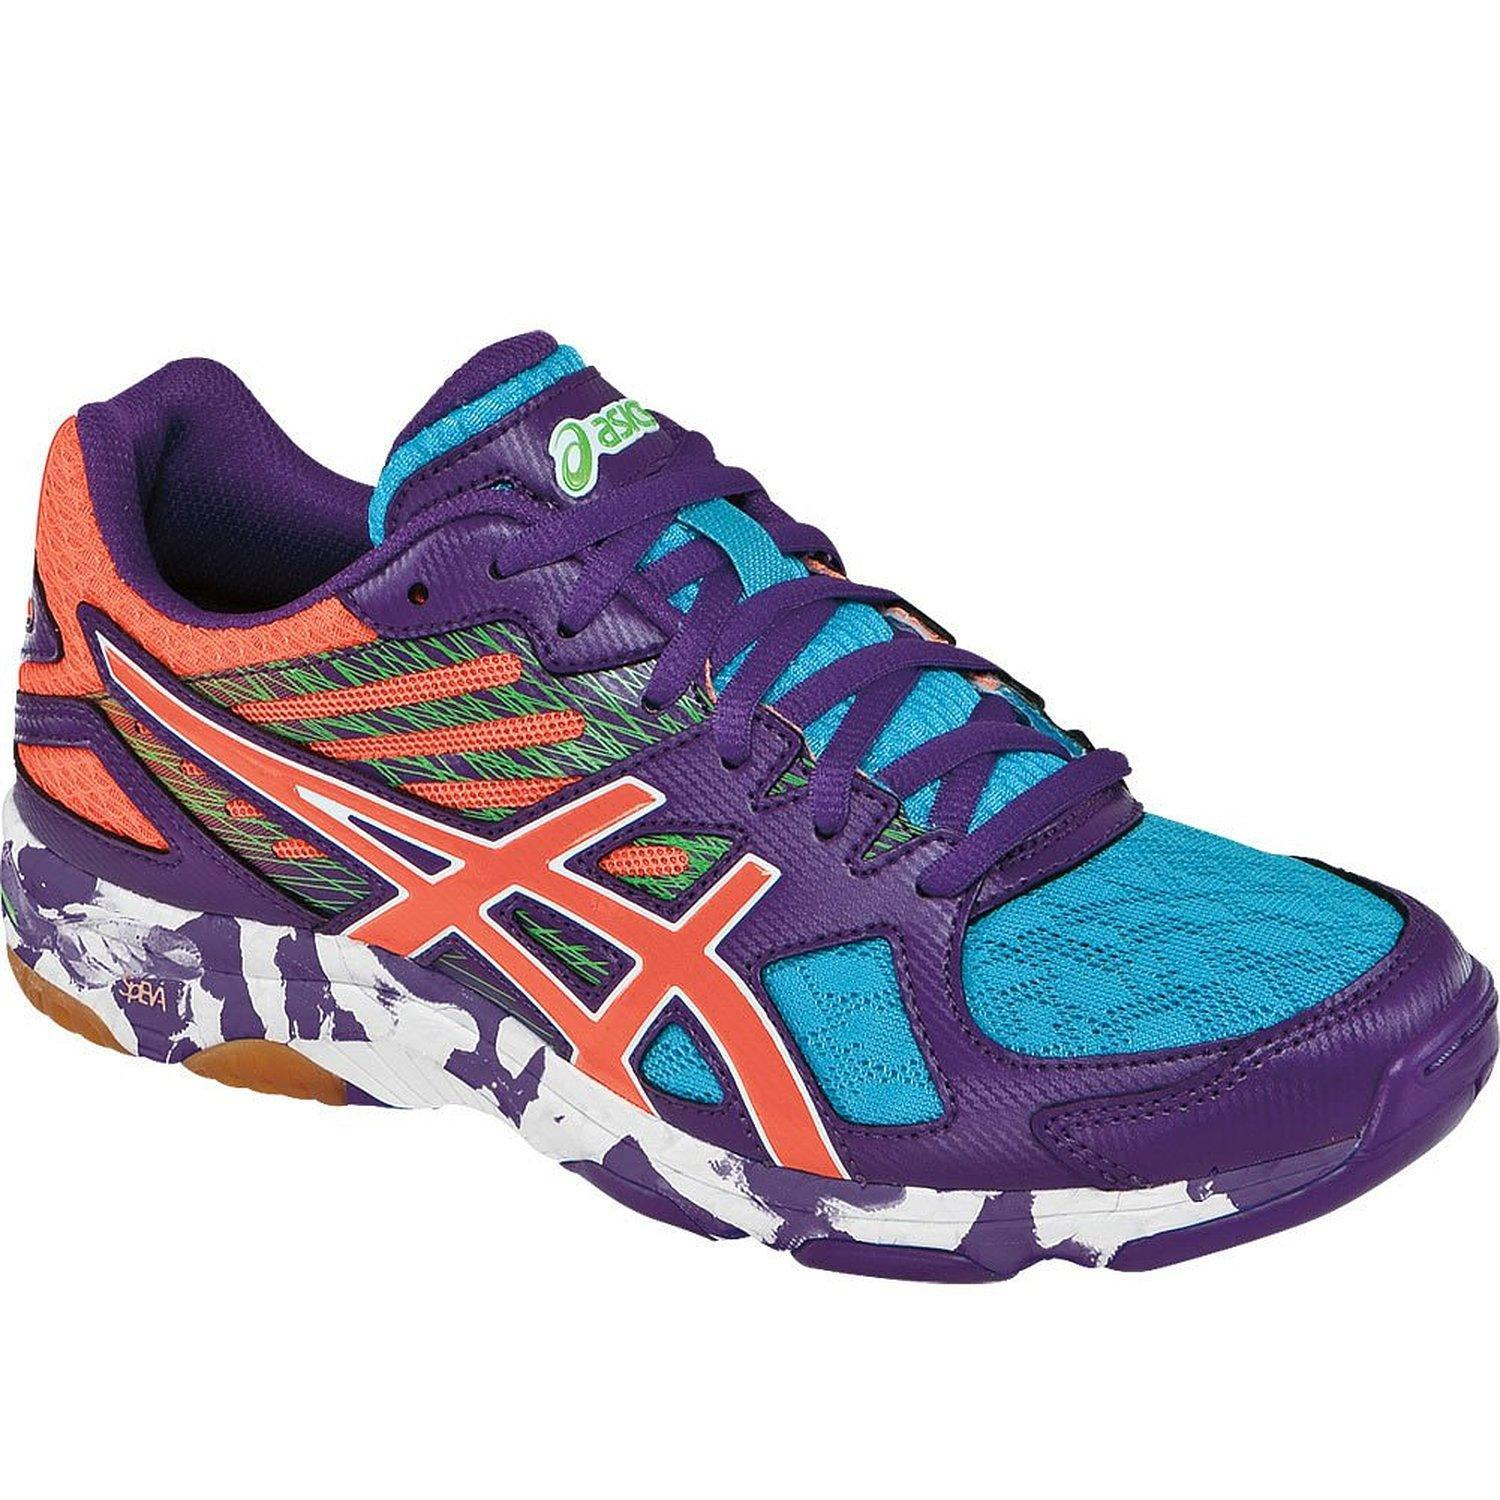 Asics Gel Flashpoint 2 Women - Purple Peach Green